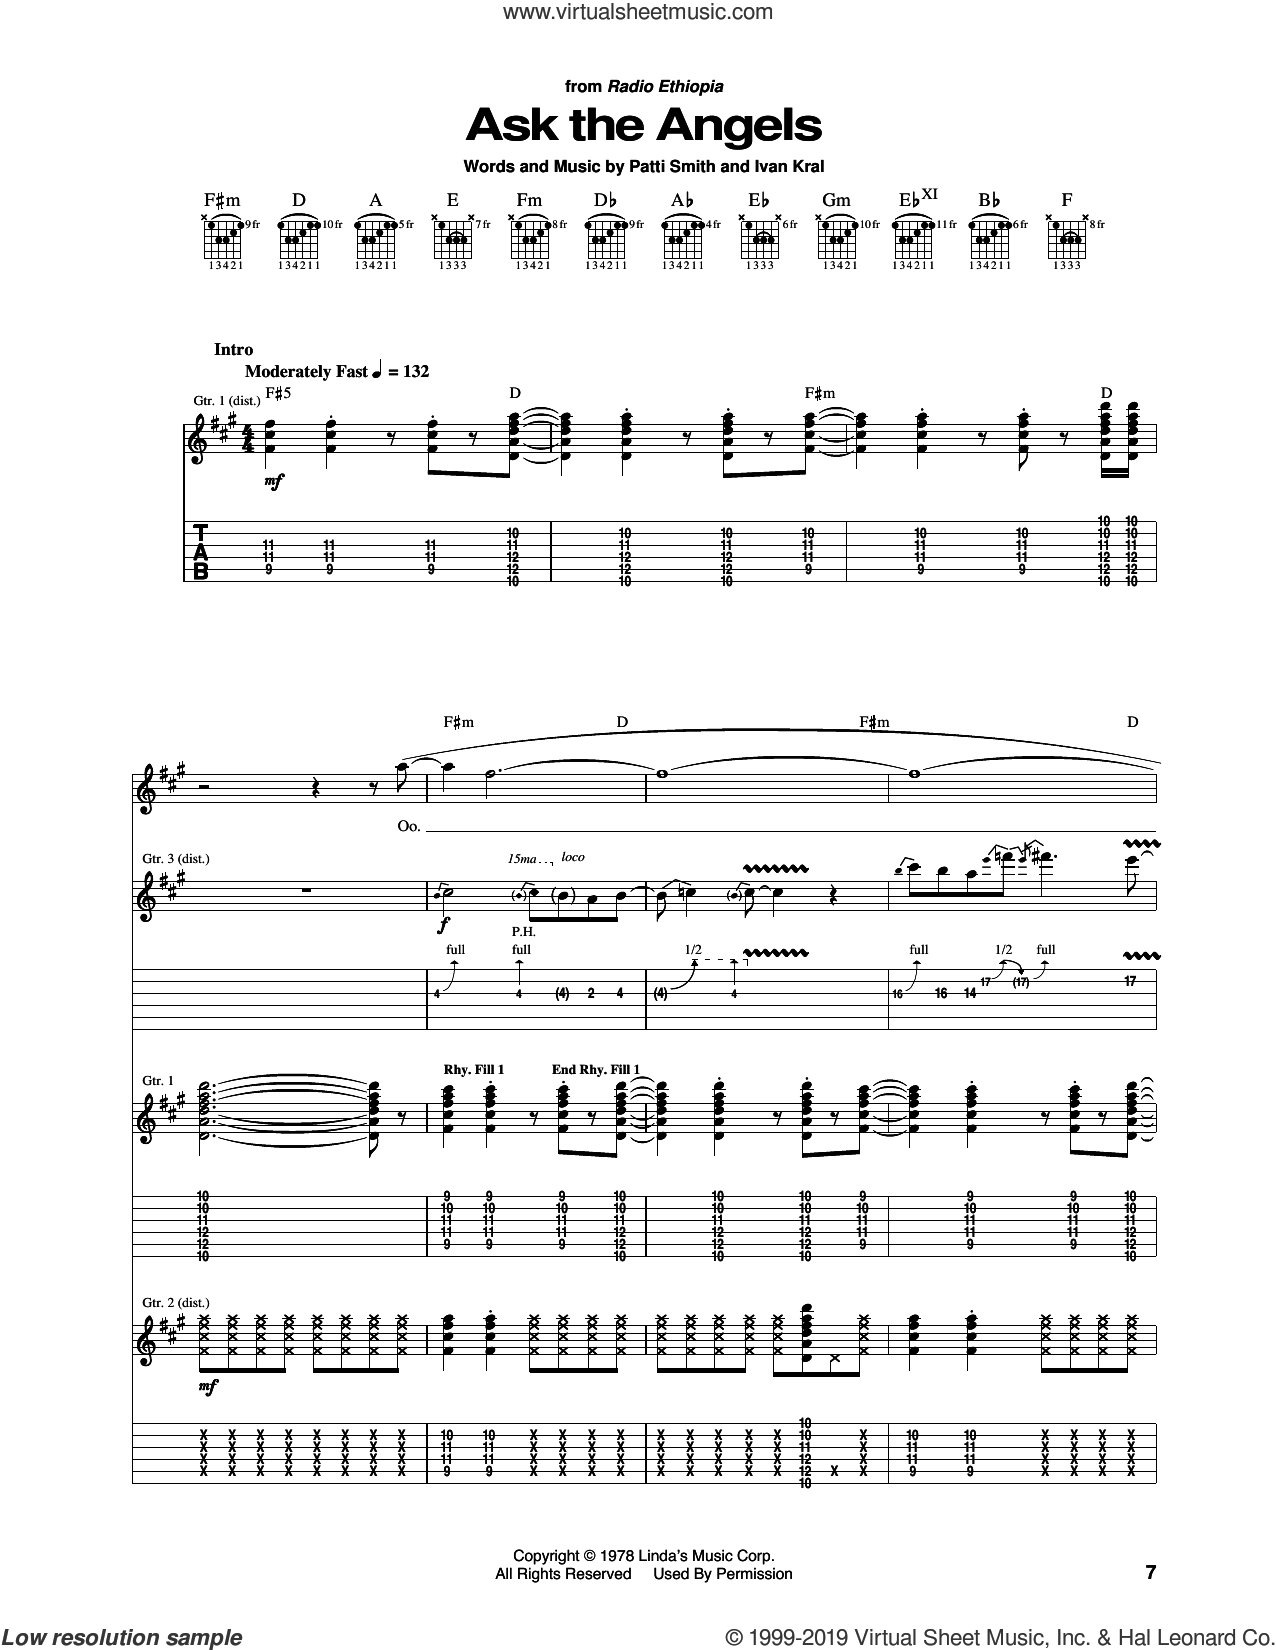 Ask The Angels sheet music for guitar (tablature) by Patti Smith and Ivan Kral, intermediate skill level